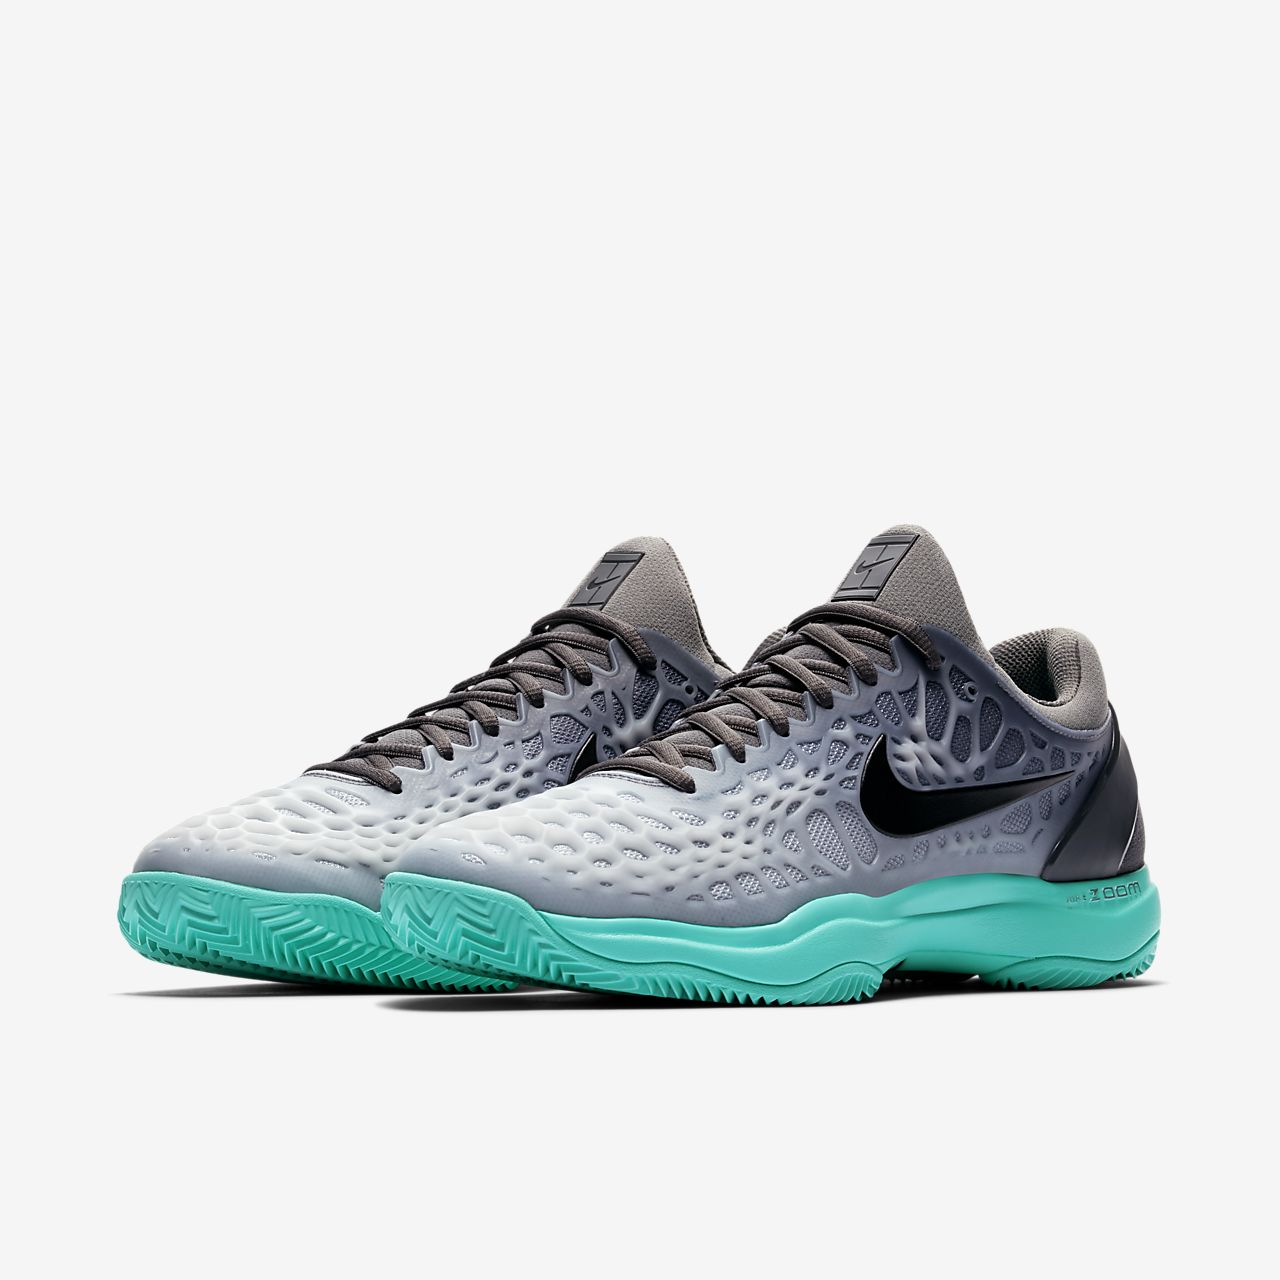 Nike Zoom Cage 3 Clay (918192-001) Mens Tennis Shoes Grey/Black